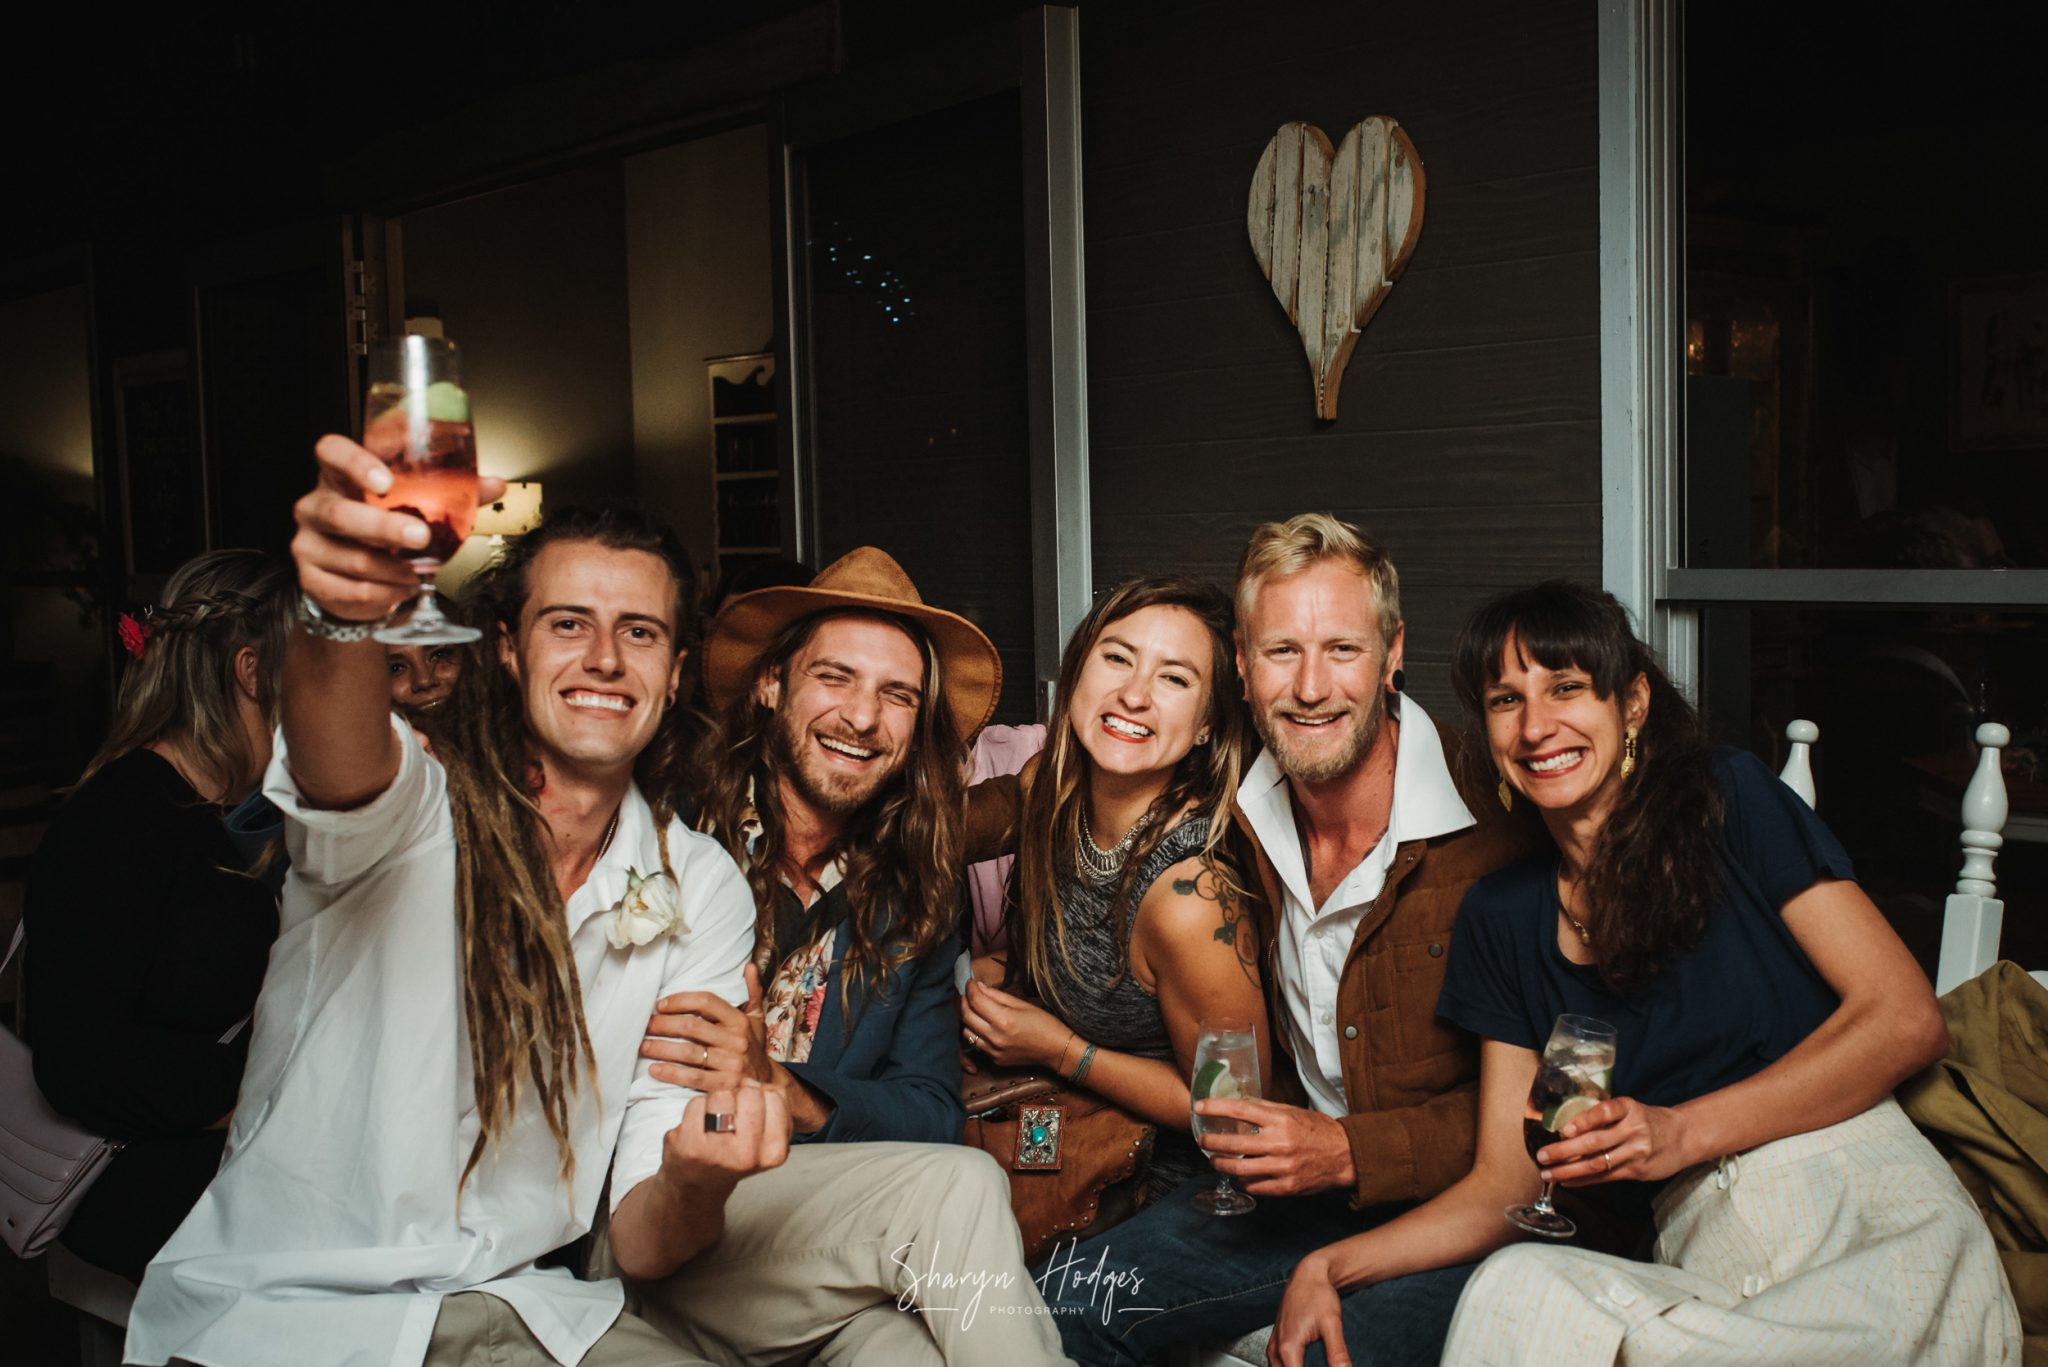 Beautiful Wedding photograph taken at Redford Lane Wines by professional photographer Sharyn Hodges in Plettenberg Bay, Garden Route.